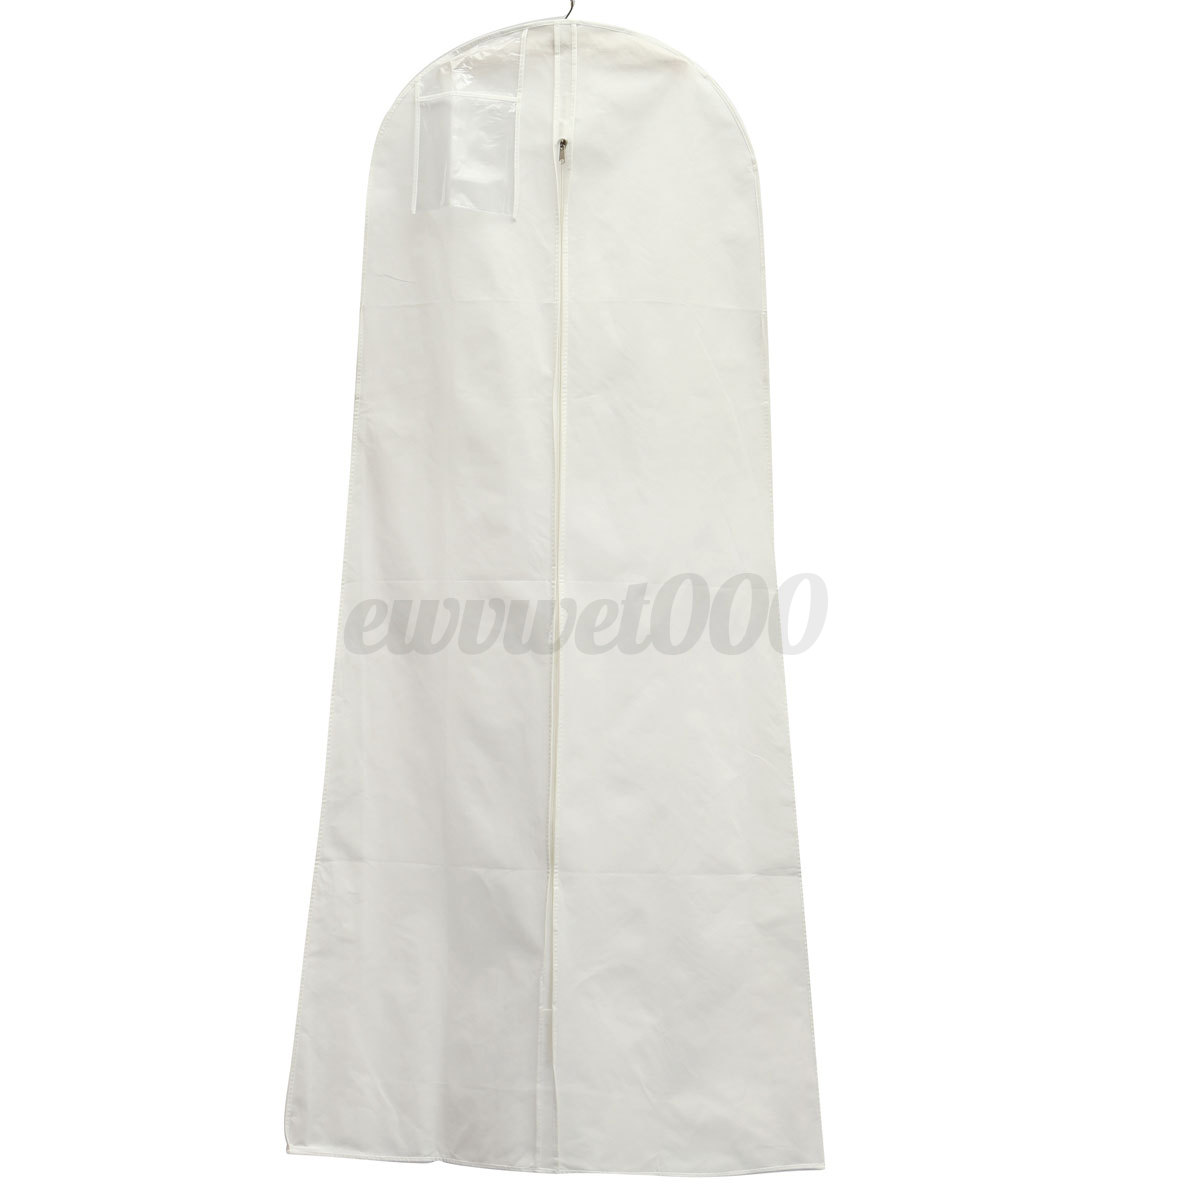 wedding dress cover storage bags dustproof breathable large bridal